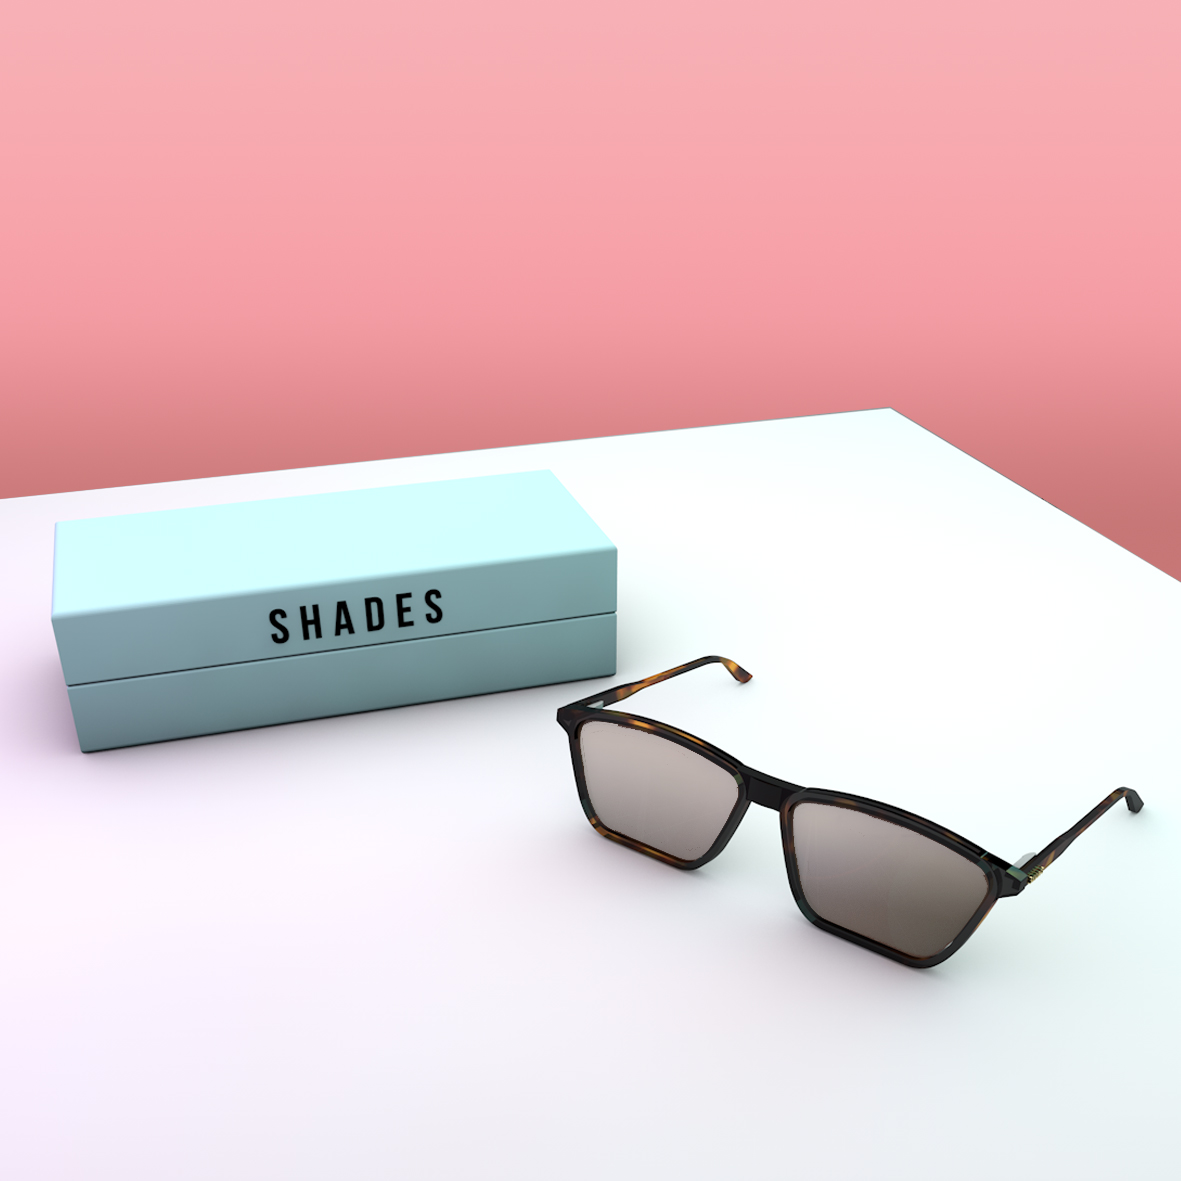 sunglasses box.jpg